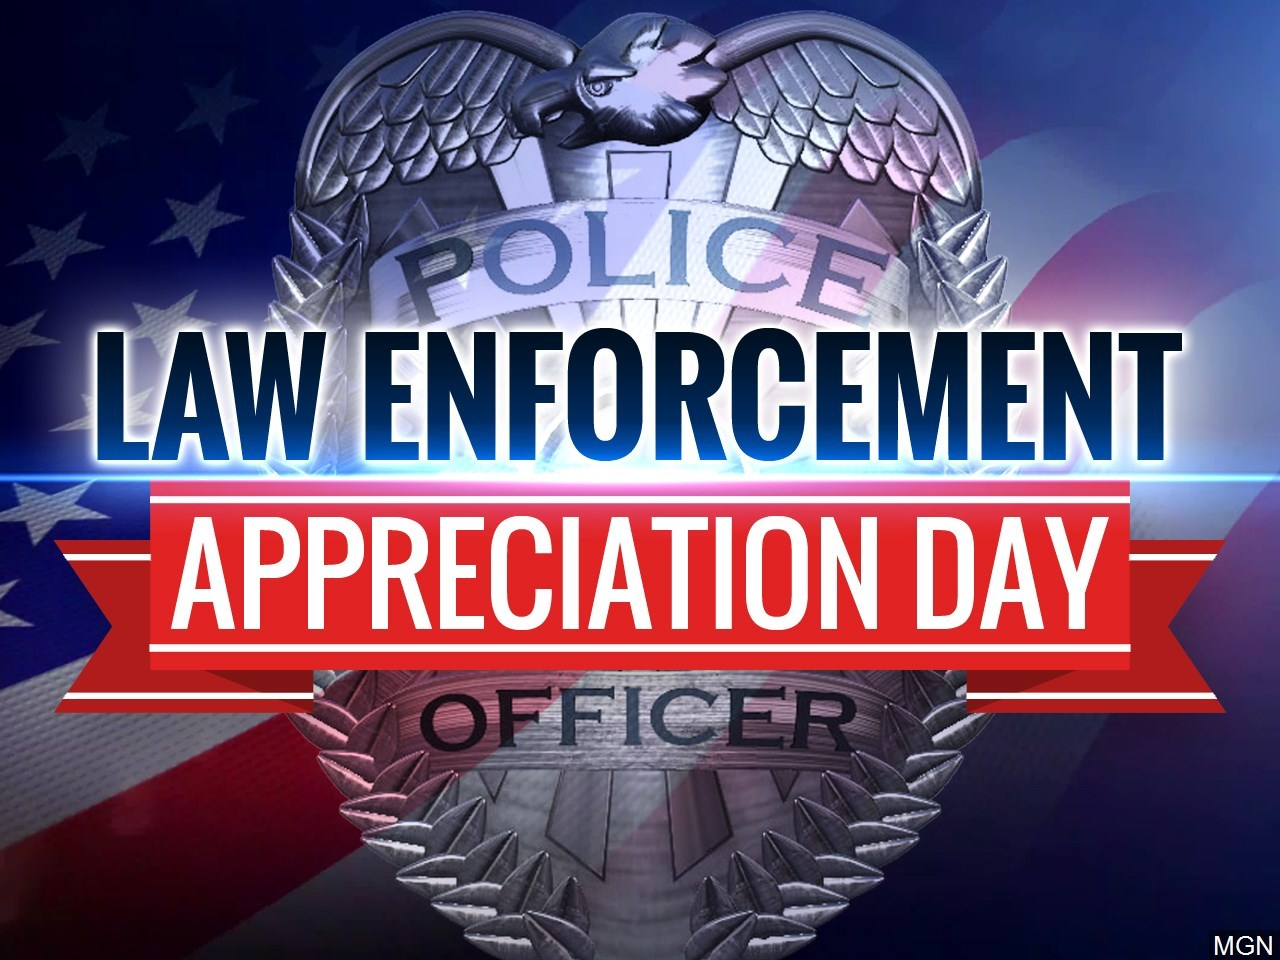 National Law Enforcement Appreciation Day celebrates officers who 1280x960